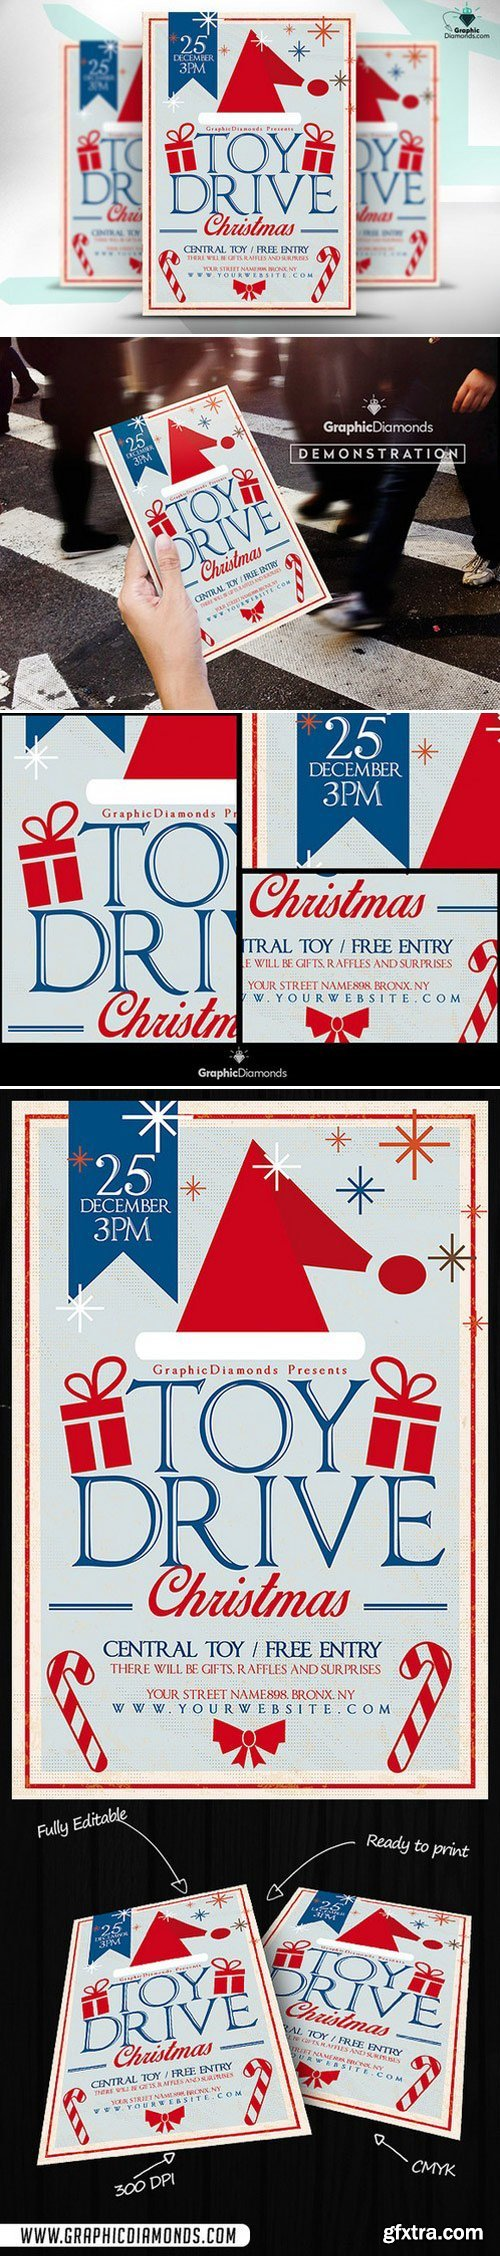 CM - Toy Drive Christmas Flyer 469017